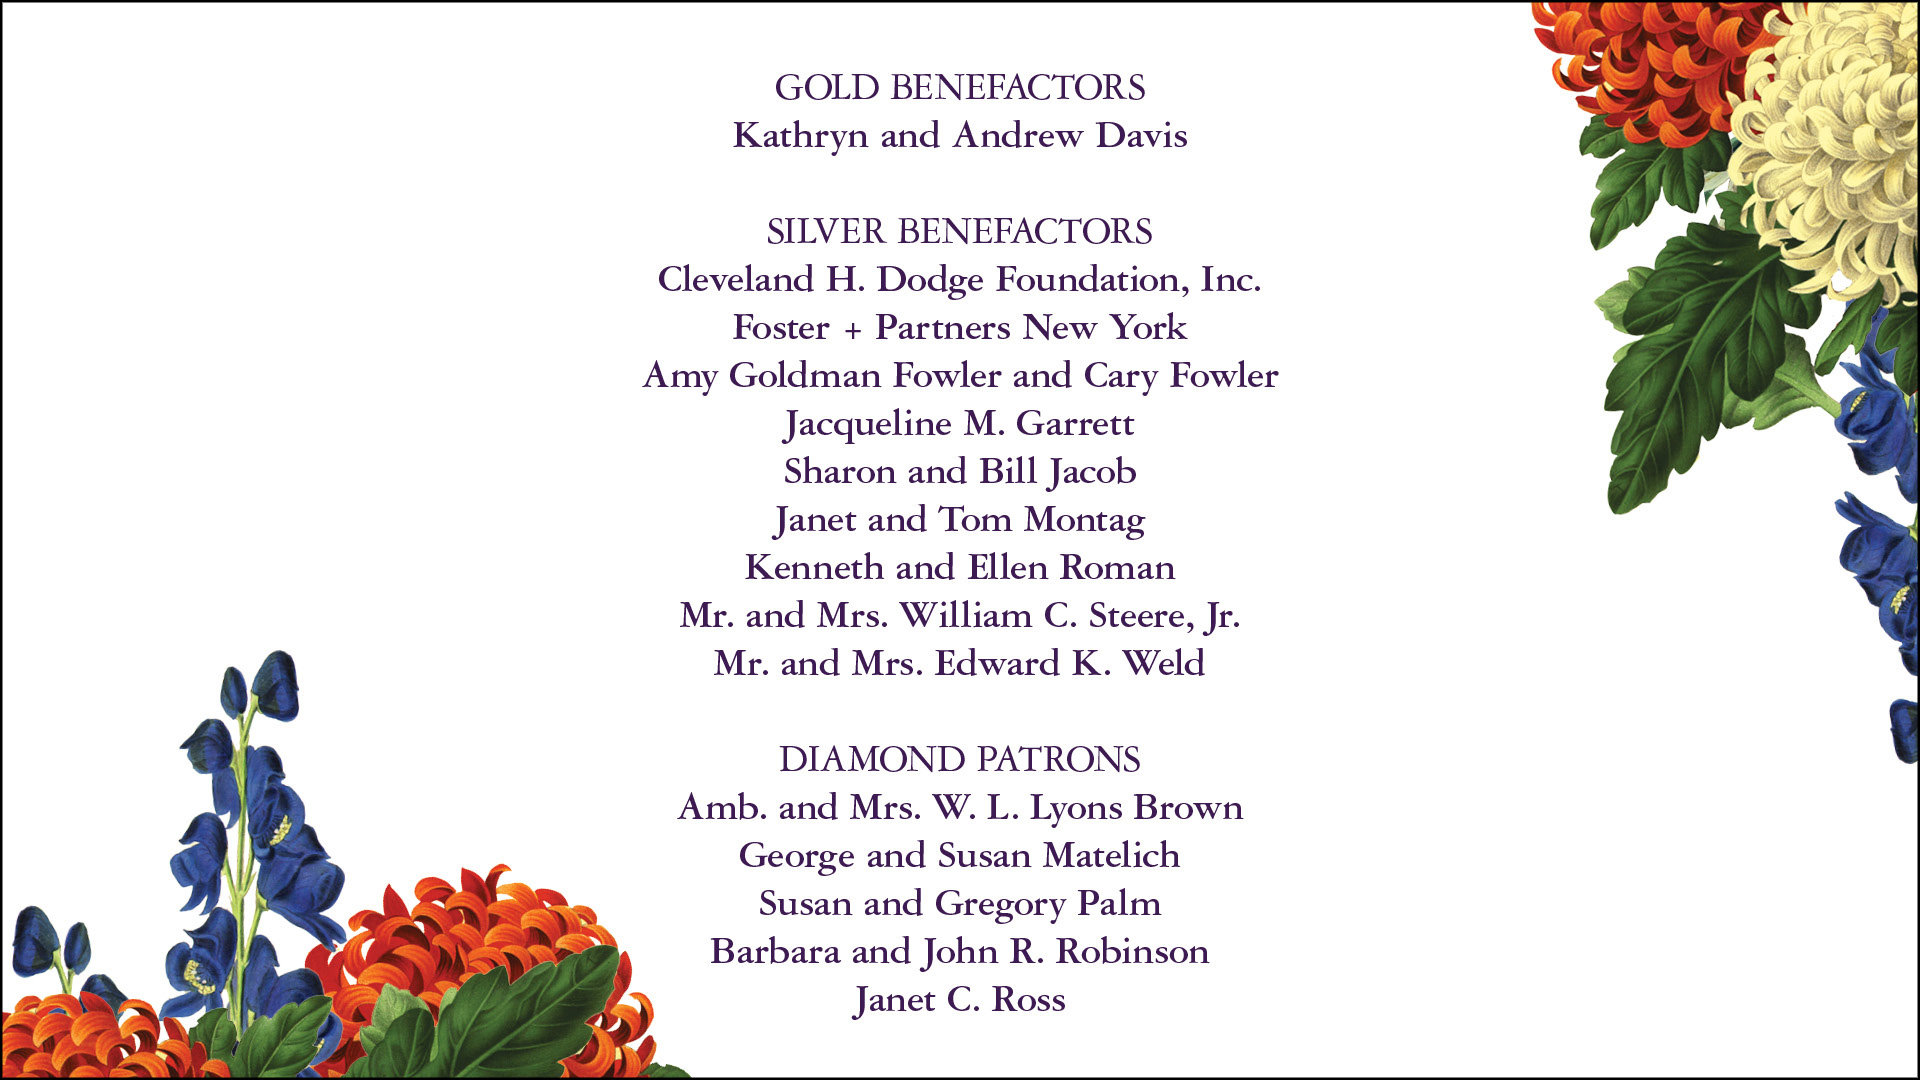 GOLD BENEFACTORS Kathryn and Andrew Davis SILVER BENEFACTORS Cleveland H. Dodge Foundation, Inc. Foster + Partners New York Amy Goldman Fowler and Cary Fowler Jacqueline M. Garrett Sharon and Bill Jacob Janet and Tom Montag Kenneth and Ellen Roman Mr. and Mrs. William C. Steere, Jr. Mr. and Mrs. Edward K. Weld DIAMOND PATRONS Amb. and Mrs. W. L. Lyons Brown George and Susan Matelich Susan and Gregory Palm Barbara and John R. Robinson Janet C. Ross